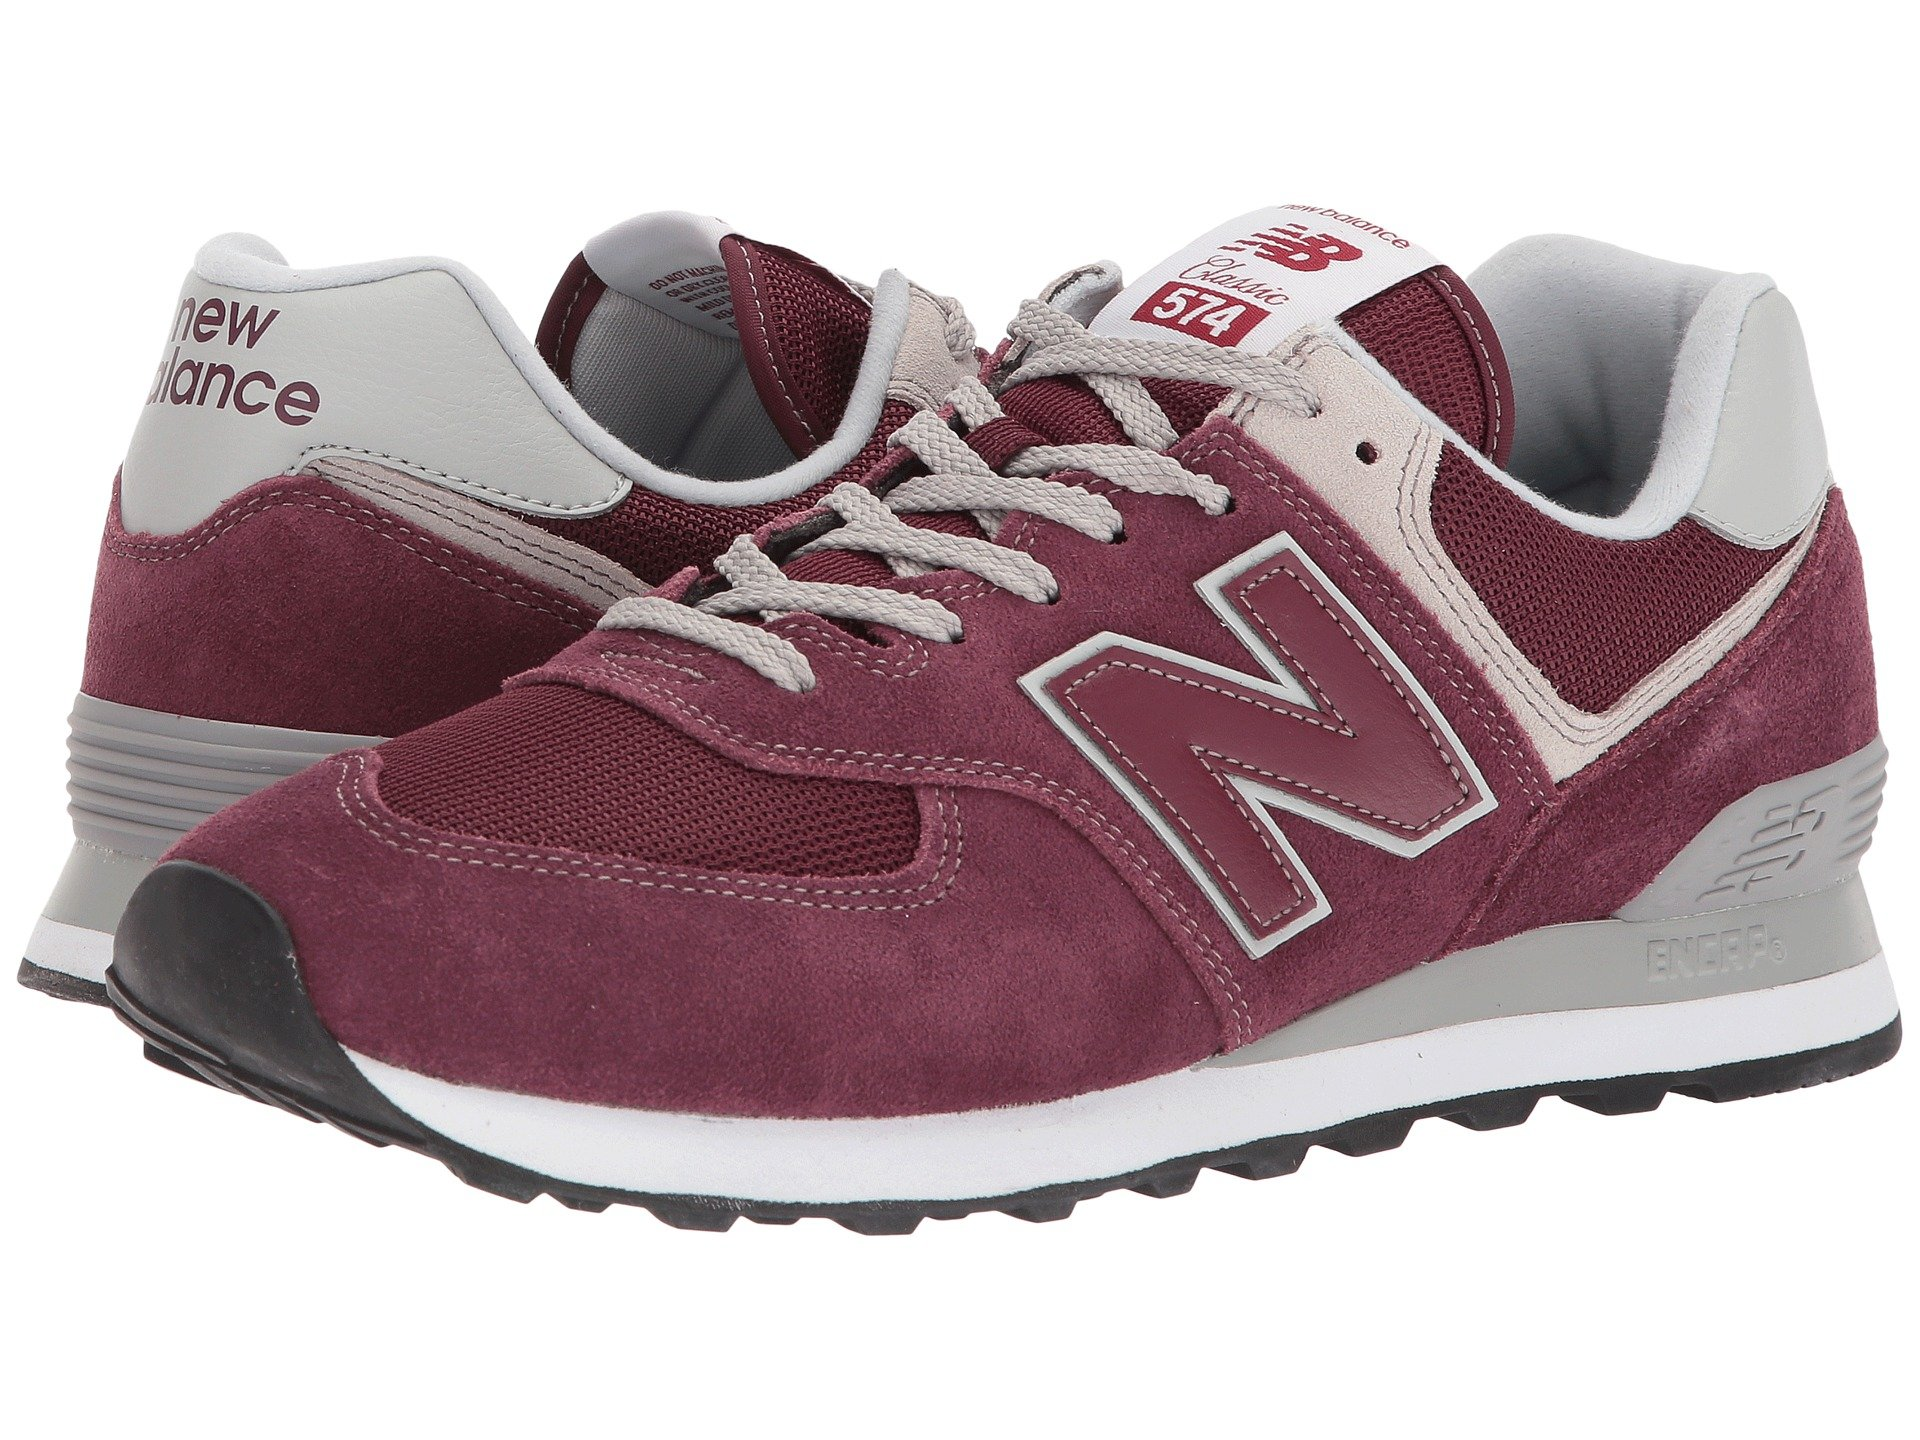 huge selection of 9aa68 6805e Details about NEW BALANCE 574 Core Burgundy Men's Sneaker Shoes ML574EGB